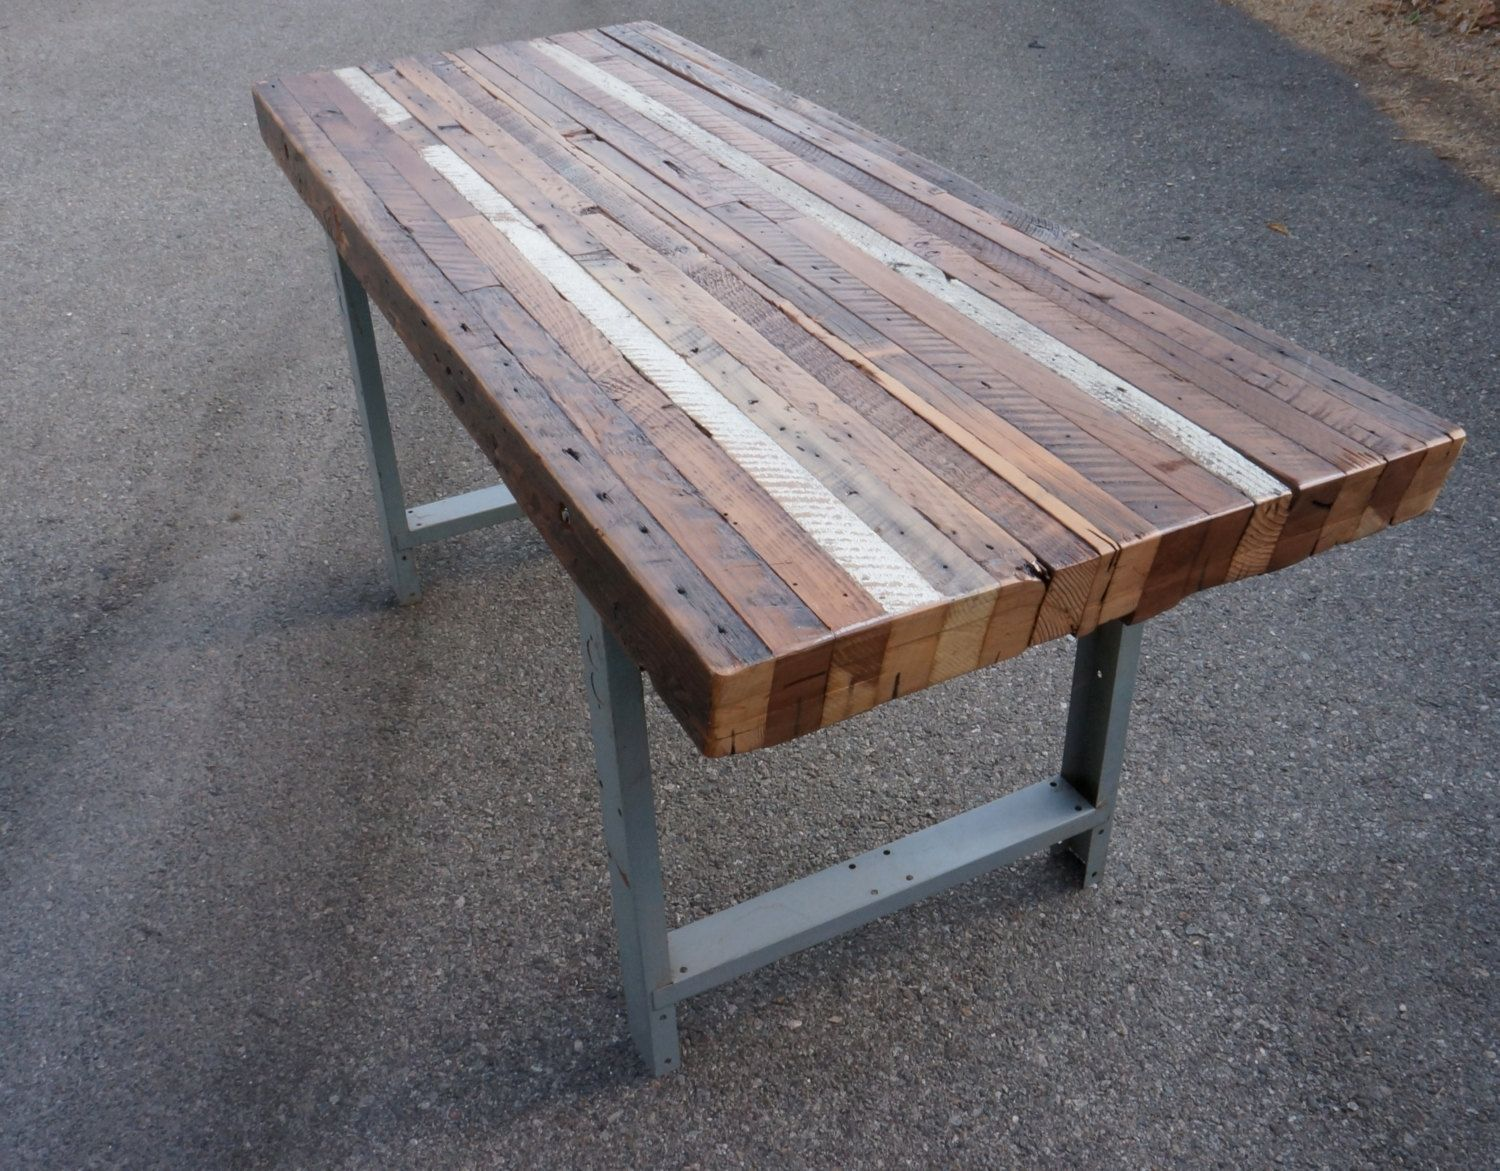 Handmade custom outdoor indoor rustic industrial reclaimed wood dining table coffee table by Rustic wood and metal coffee table